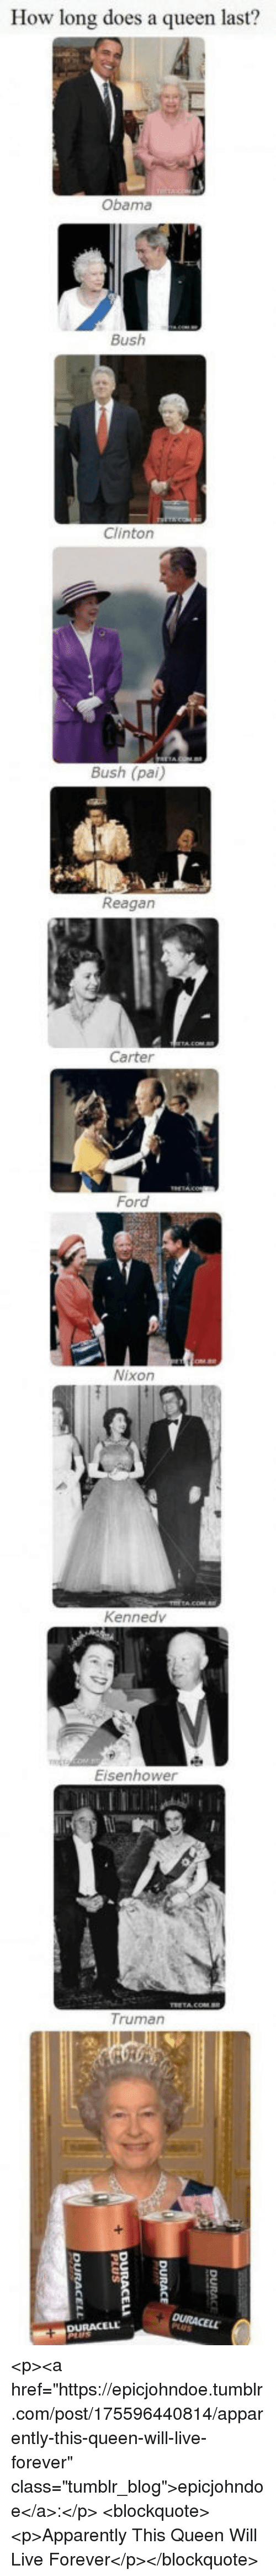 "Apparently, Obama, and Tumblr: How long does a queen last?  Obama  Bush  Clinton  Bush (pai)  Reagan  Carter  Ford  Nixon  Kennedv  Eisenhower  Truman <p><a href=""https://epicjohndoe.tumblr.com/post/175596440814/apparently-this-queen-will-live-forever"" class=""tumblr_blog"">epicjohndoe</a>:</p>  <blockquote><p>Apparently This Queen Will Live Forever</p></blockquote>"